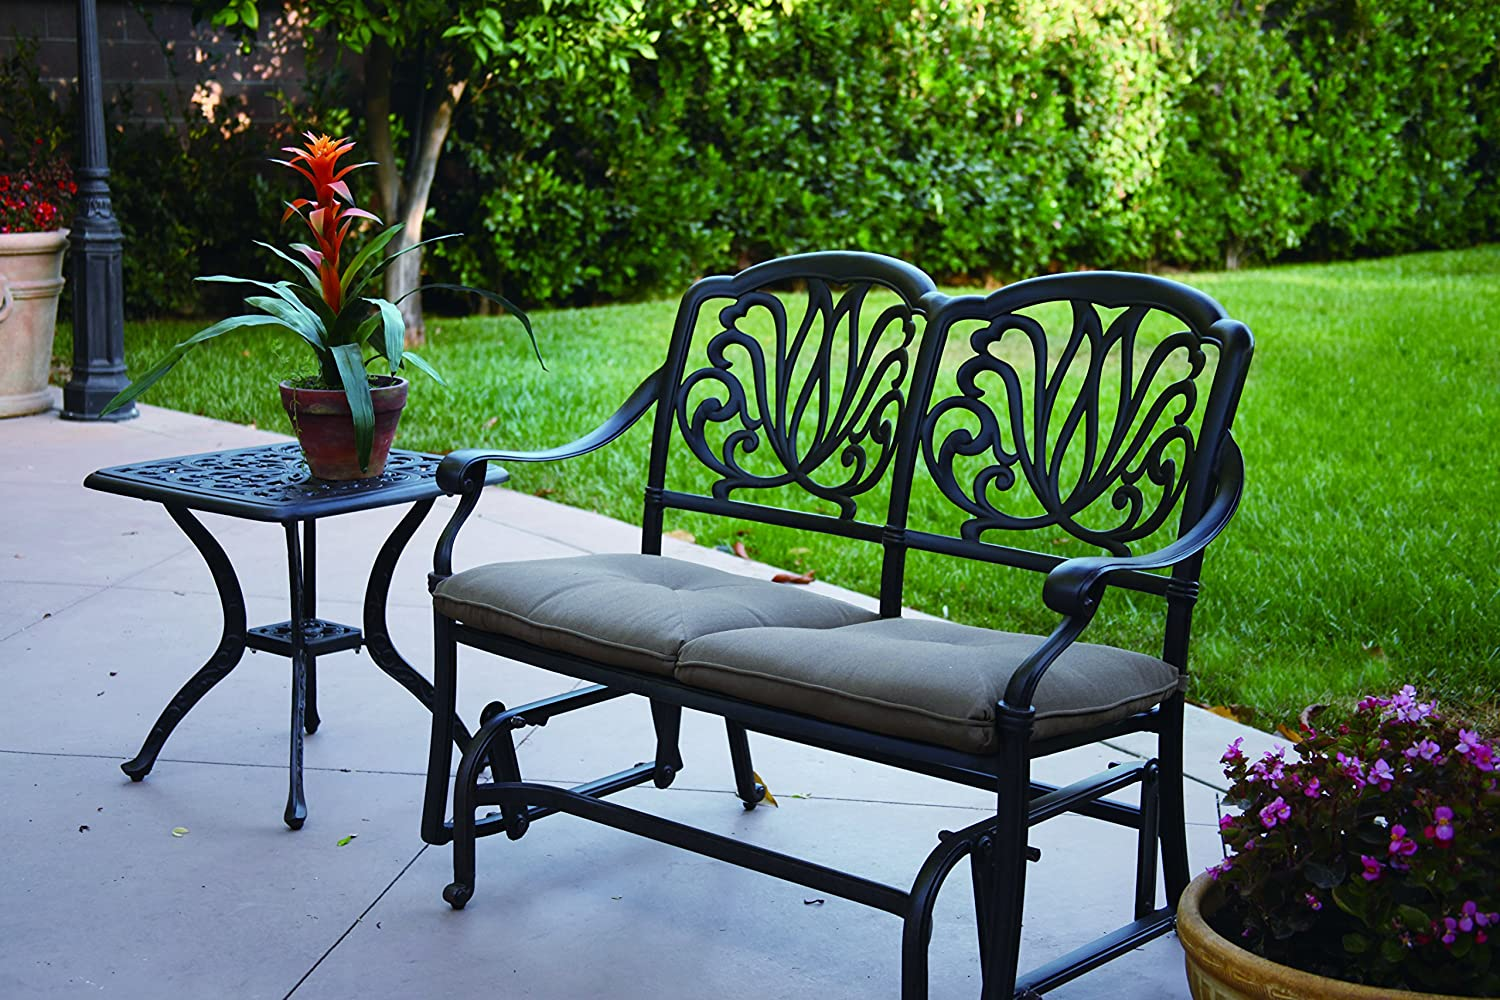 Amazon.com : Darlee Elisabeth Cast Aluminum Bench Glider with Seat Cushions  and 21-Inch Square End Table, Antique Bronze Finish : Patio, Lawn & Garden - Amazon.com : Darlee Elisabeth Cast Aluminum Bench Glider With Seat